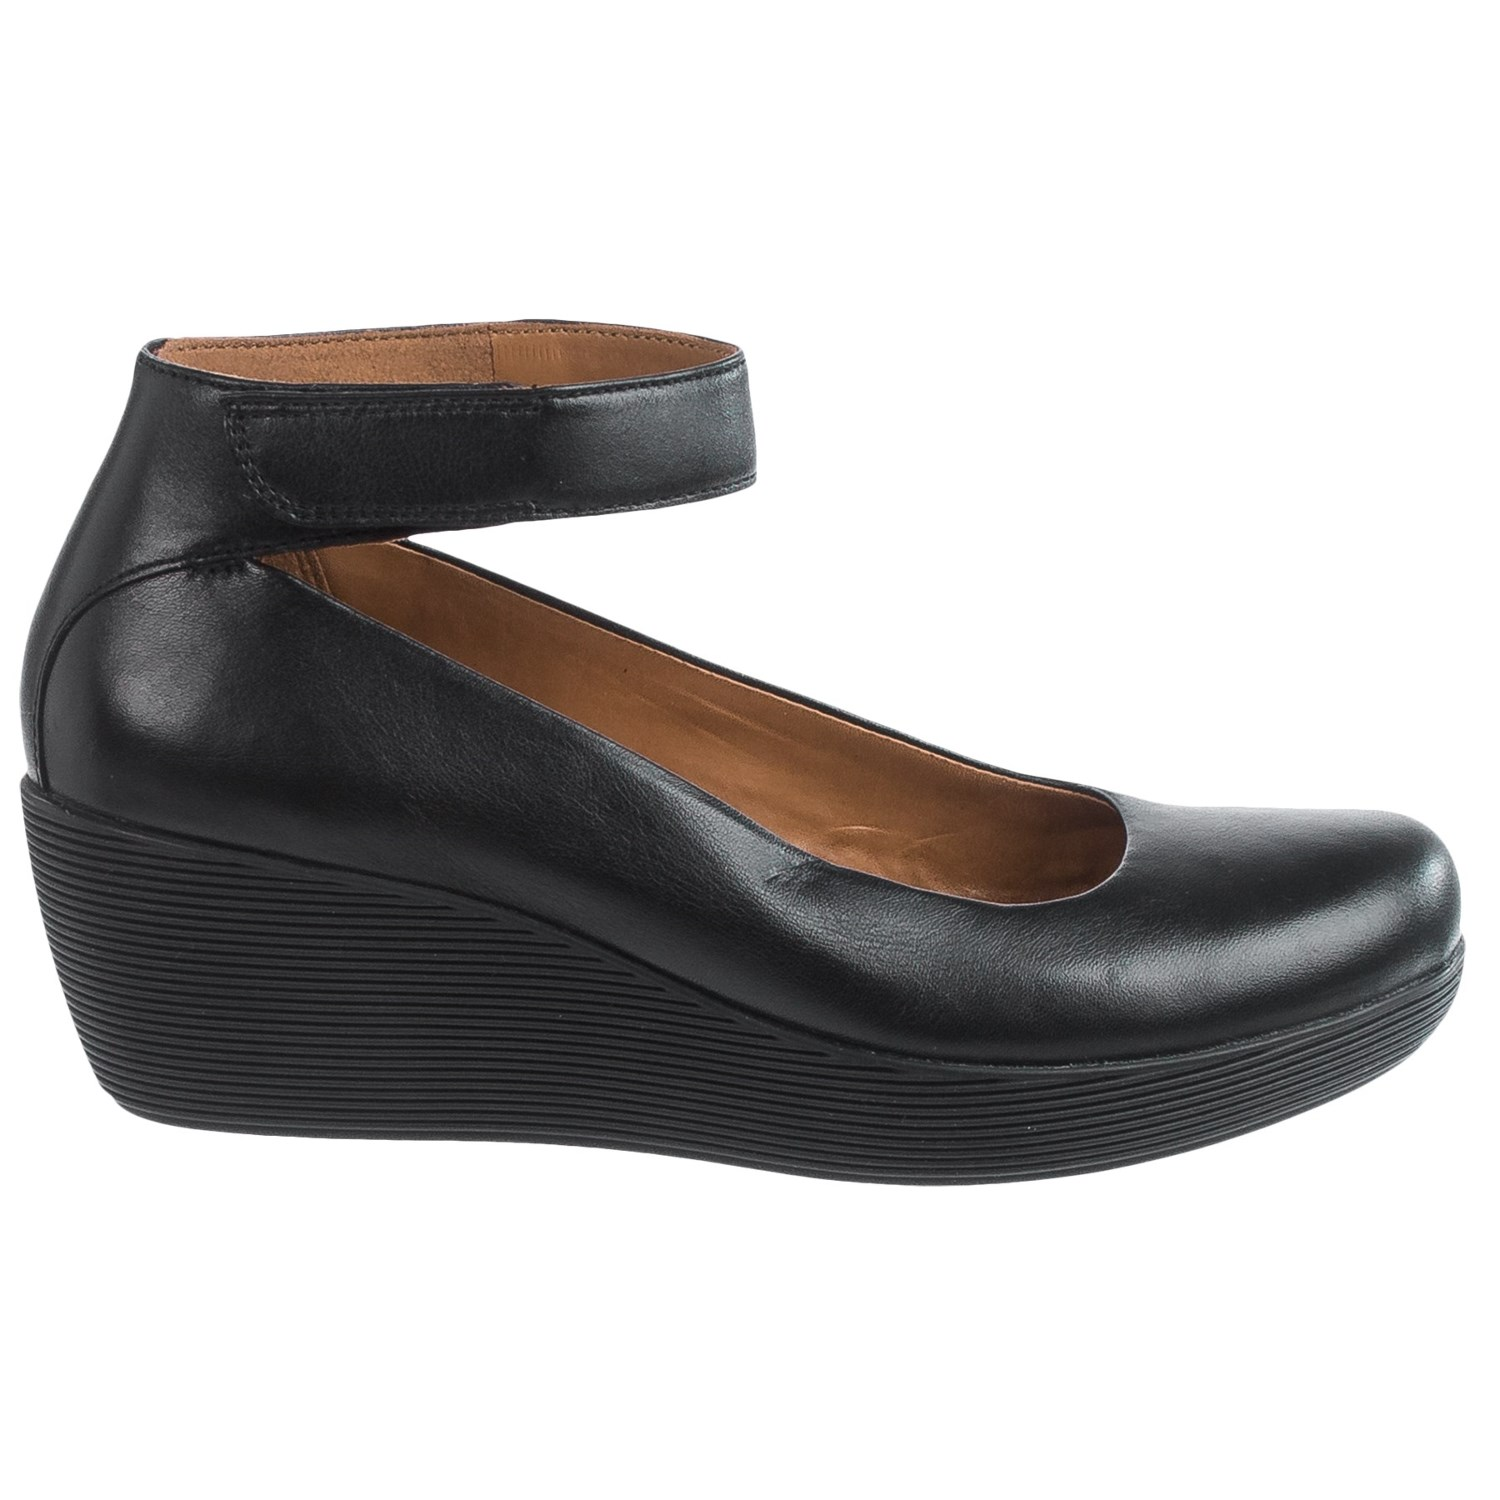 clarks claribel fame wedge shoes for save 61